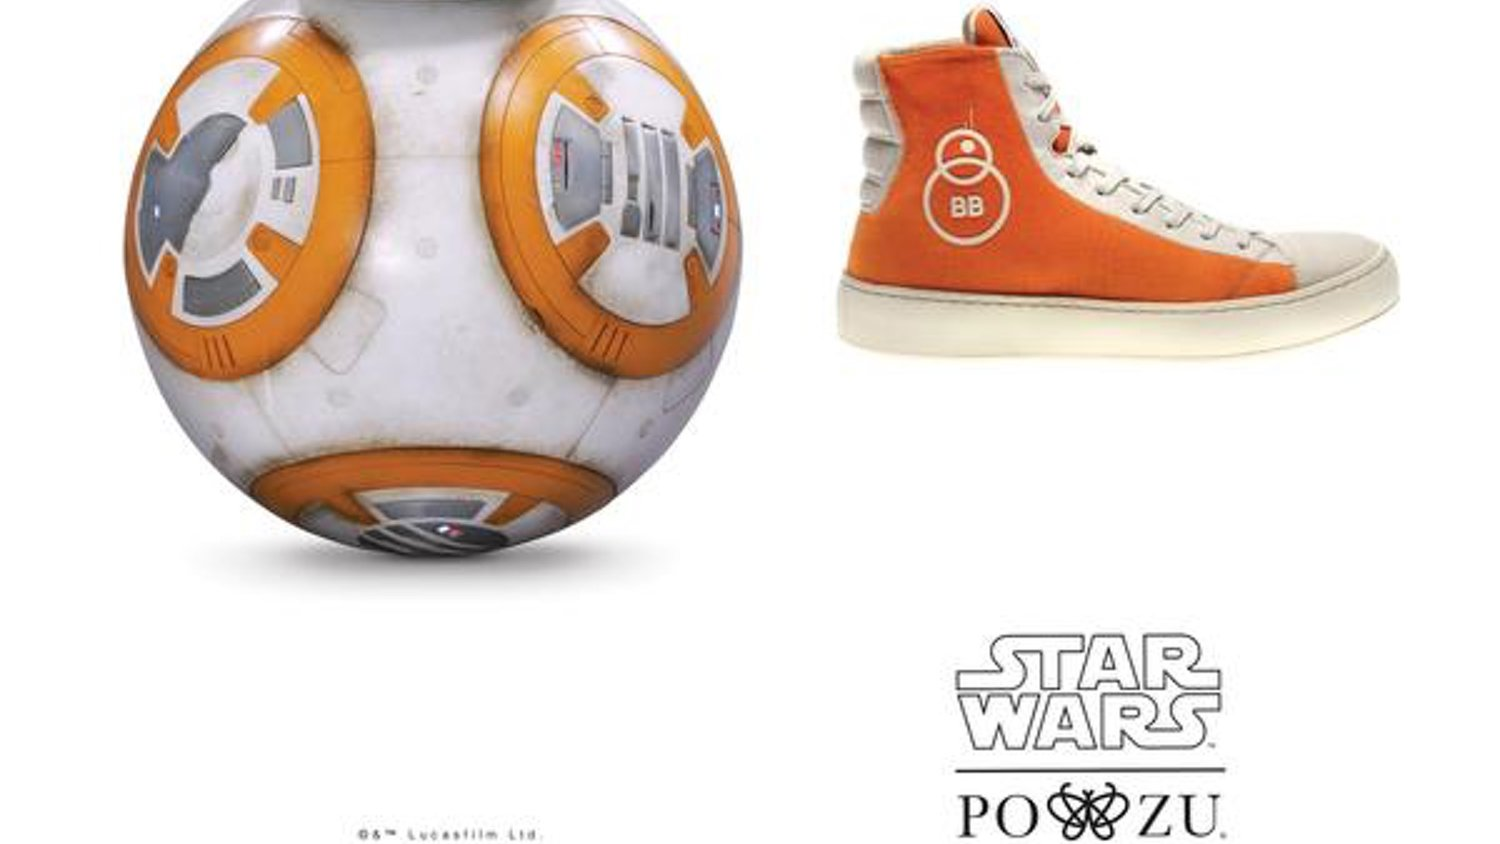 Po-Zu Unveils Their BB-8-Inspired Sneakers From STAR WARS: THE FORCE AWAKENS